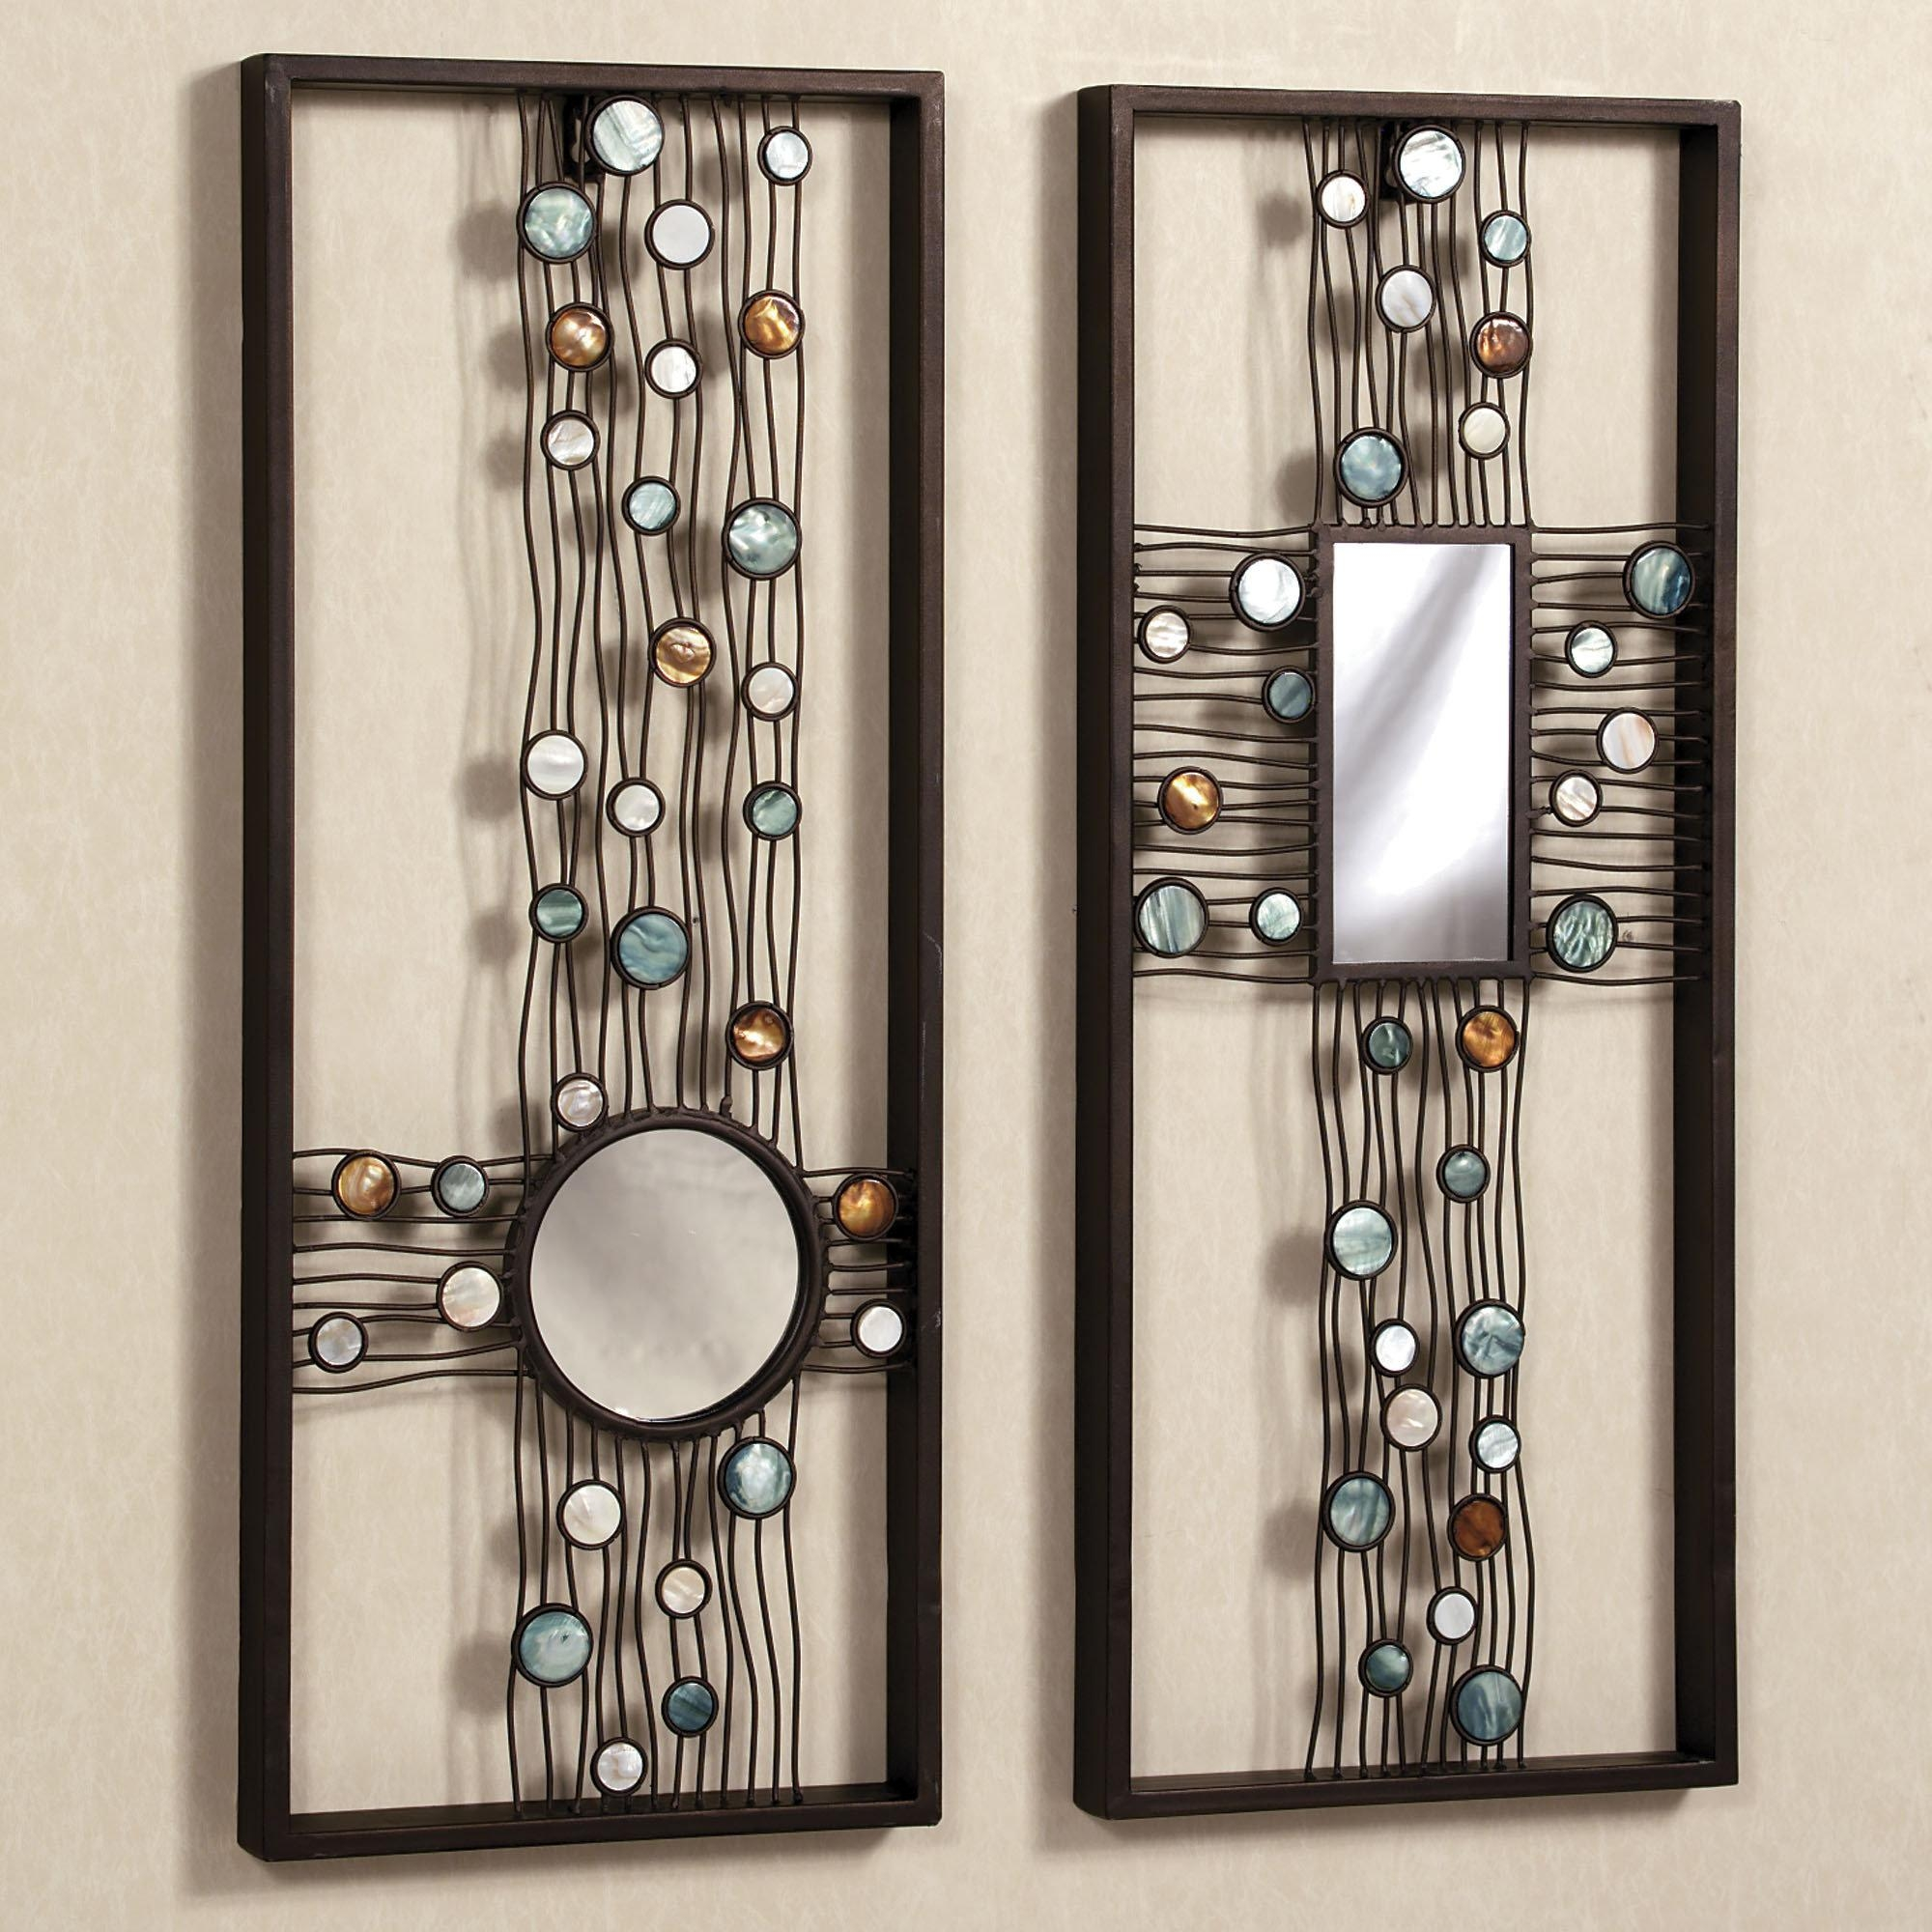 Decor : 3 Framed Wall Art Ideas Framed Wall Art Images About Intended For Mirrored Frame Wall Art (Image 12 of 20)